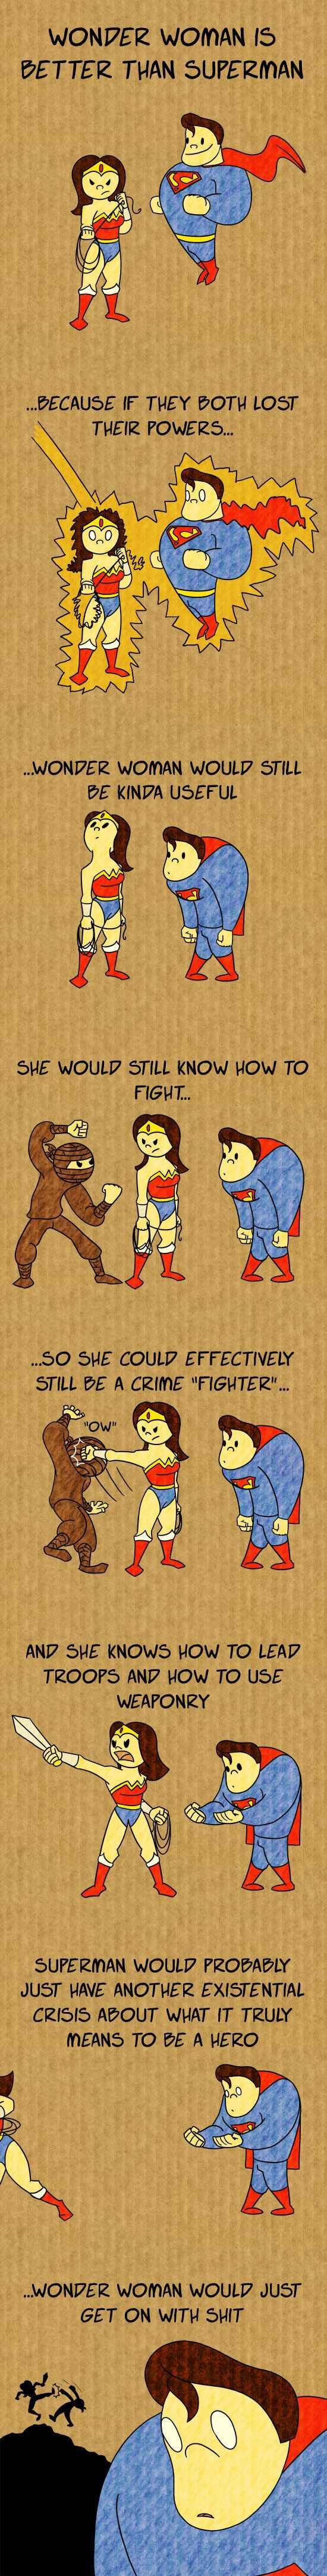 Wonder Woman is better than Super Man by ~spaced-brain on deviantART: